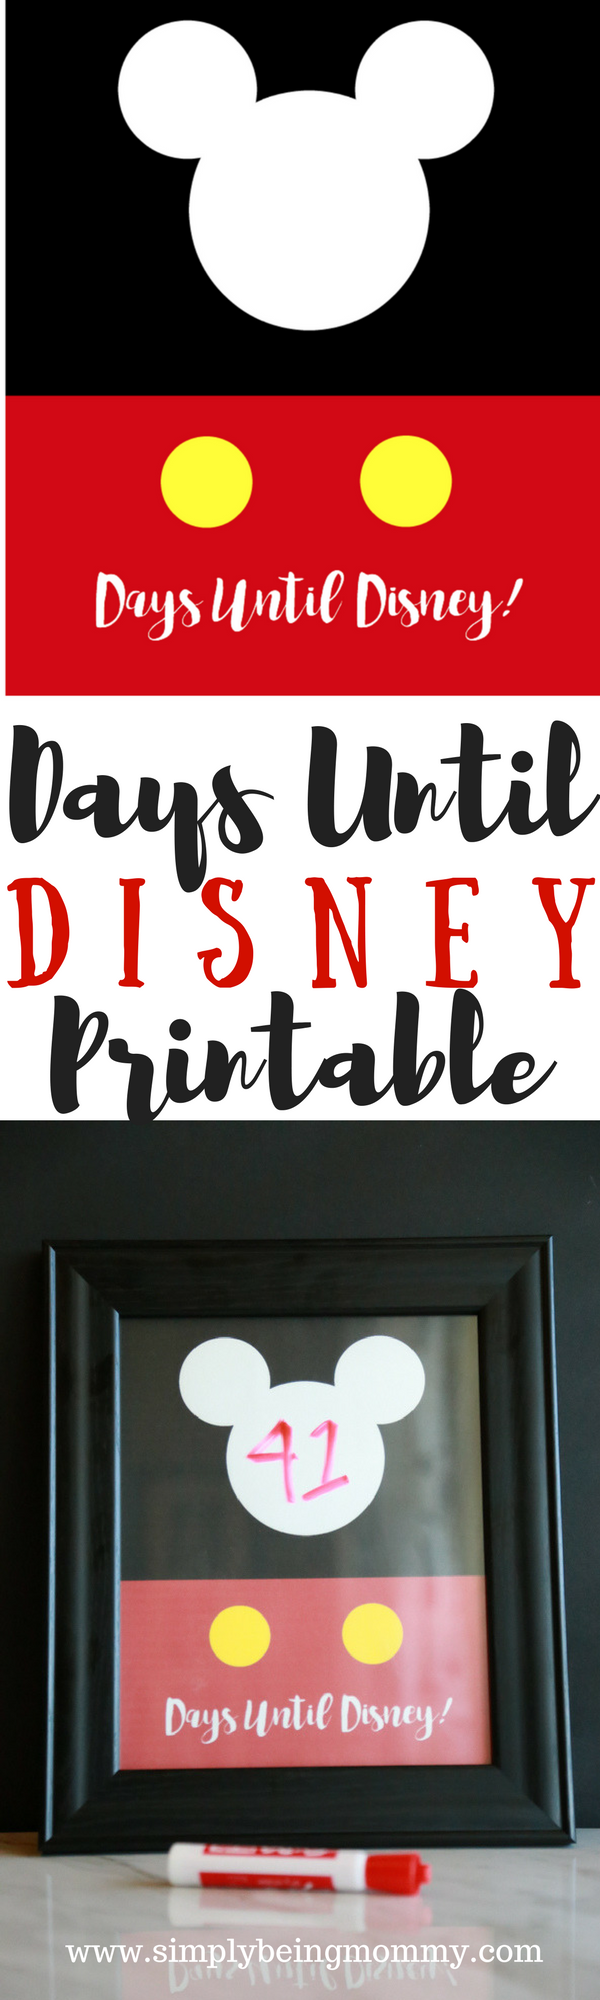 photograph relating to Disney Countdown Printable titled Times Until eventually Disney Printable Only Currently being Mommy